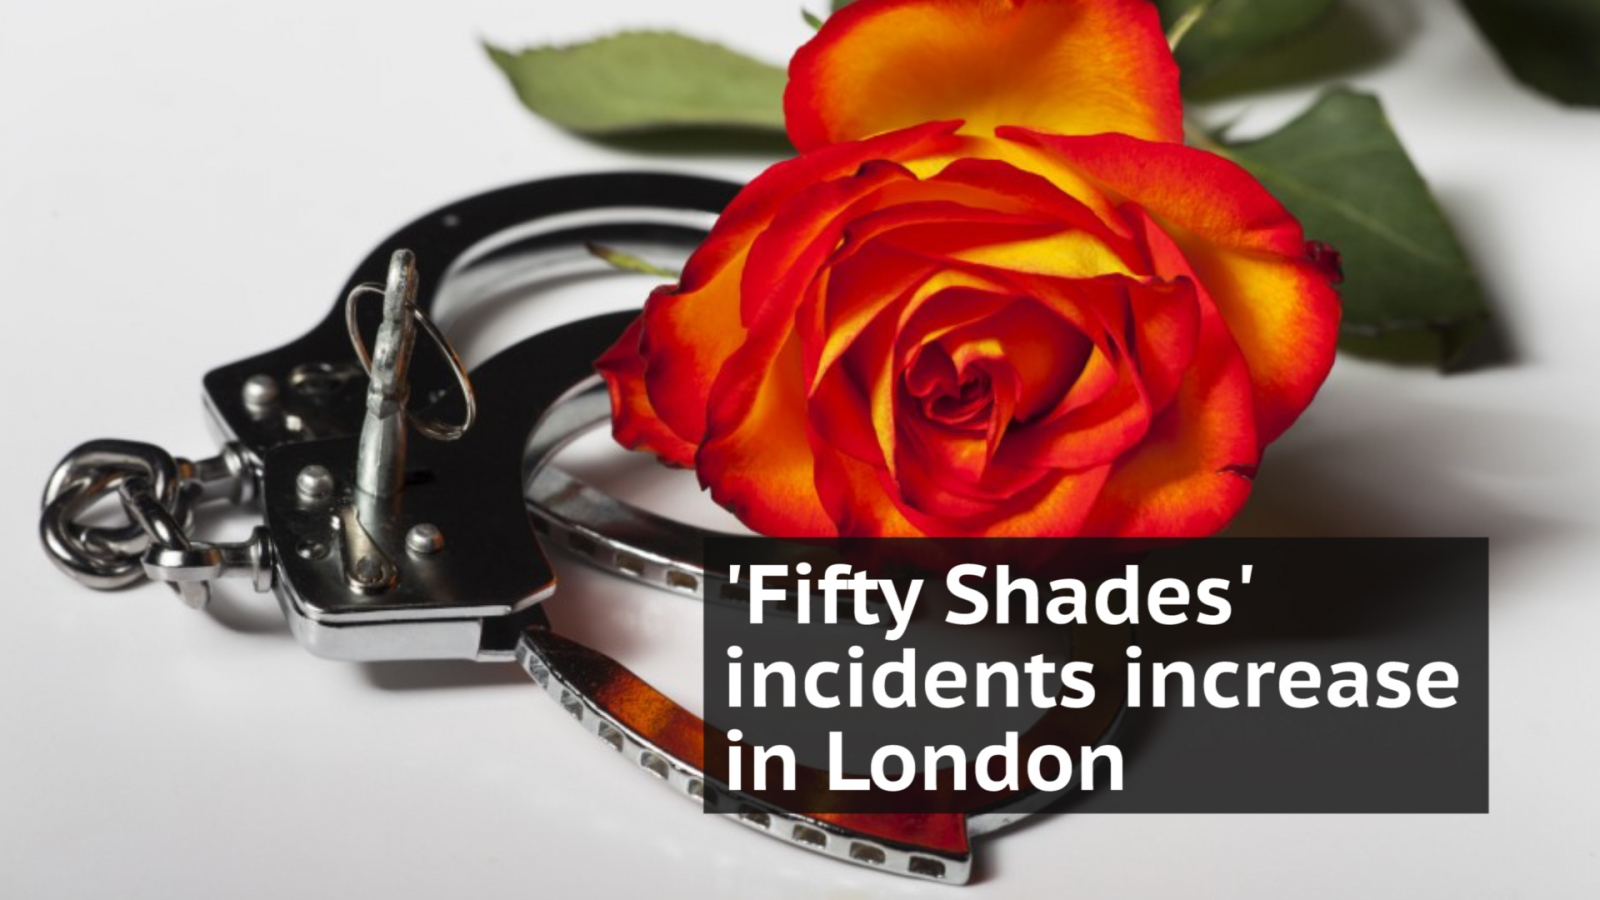 Fifty Shades of Red: London Fire Brigade puts out warning for adventurous couples on Valentine's Day